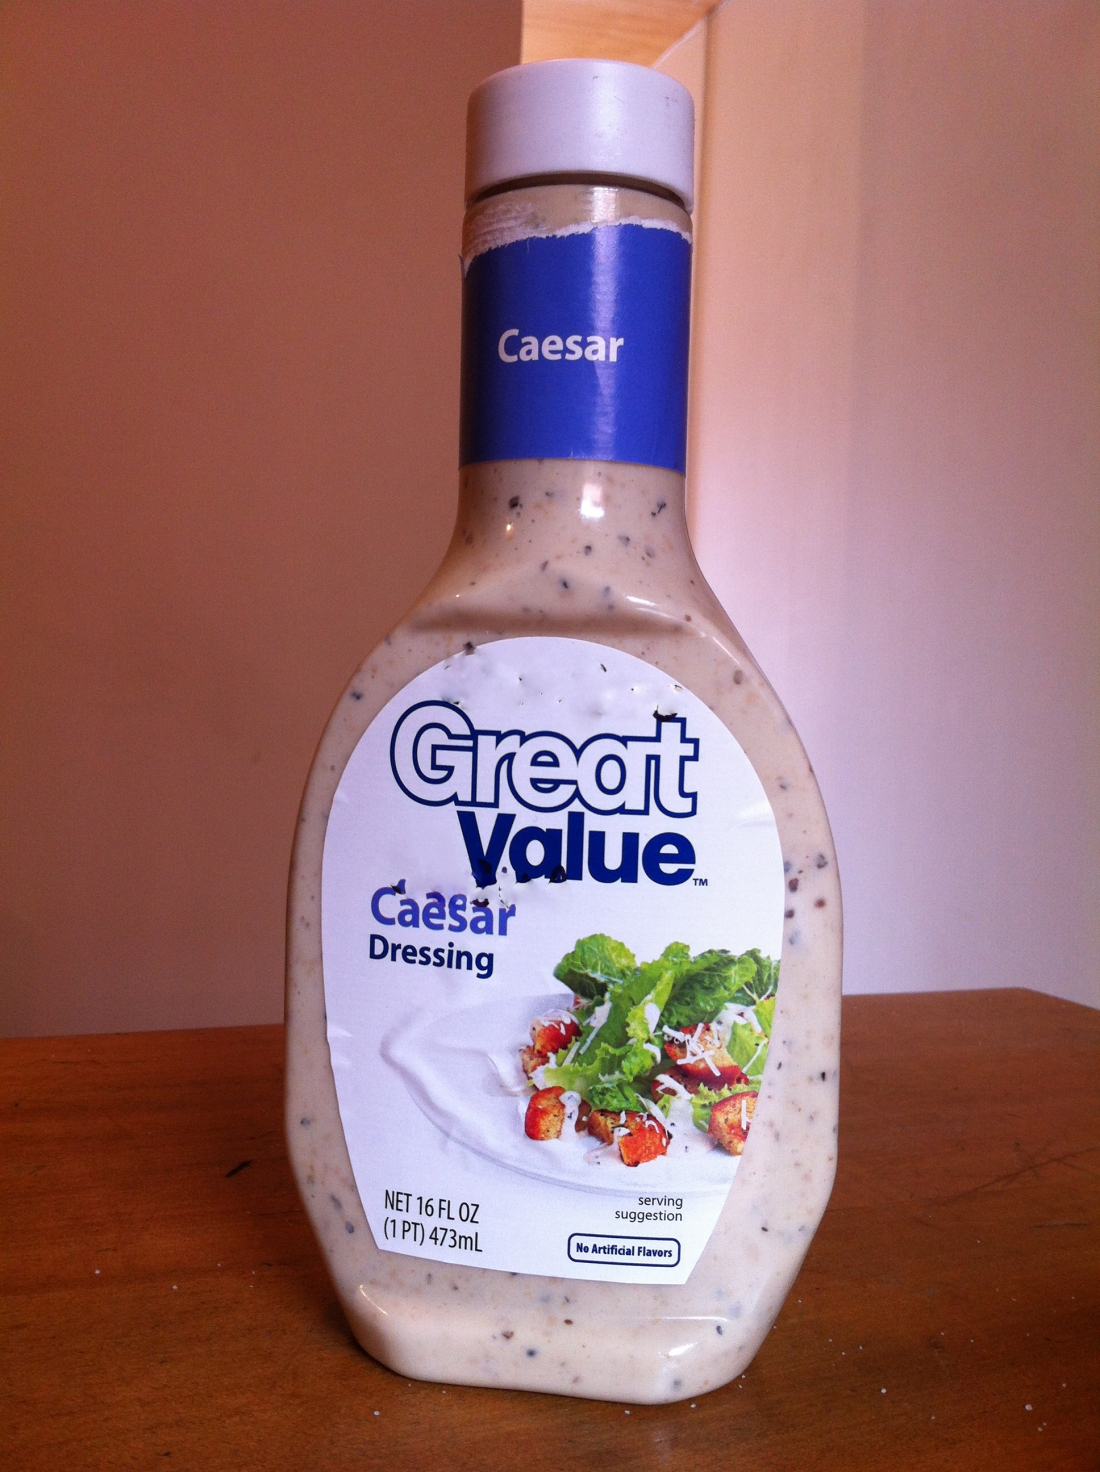 Caesar Great Value